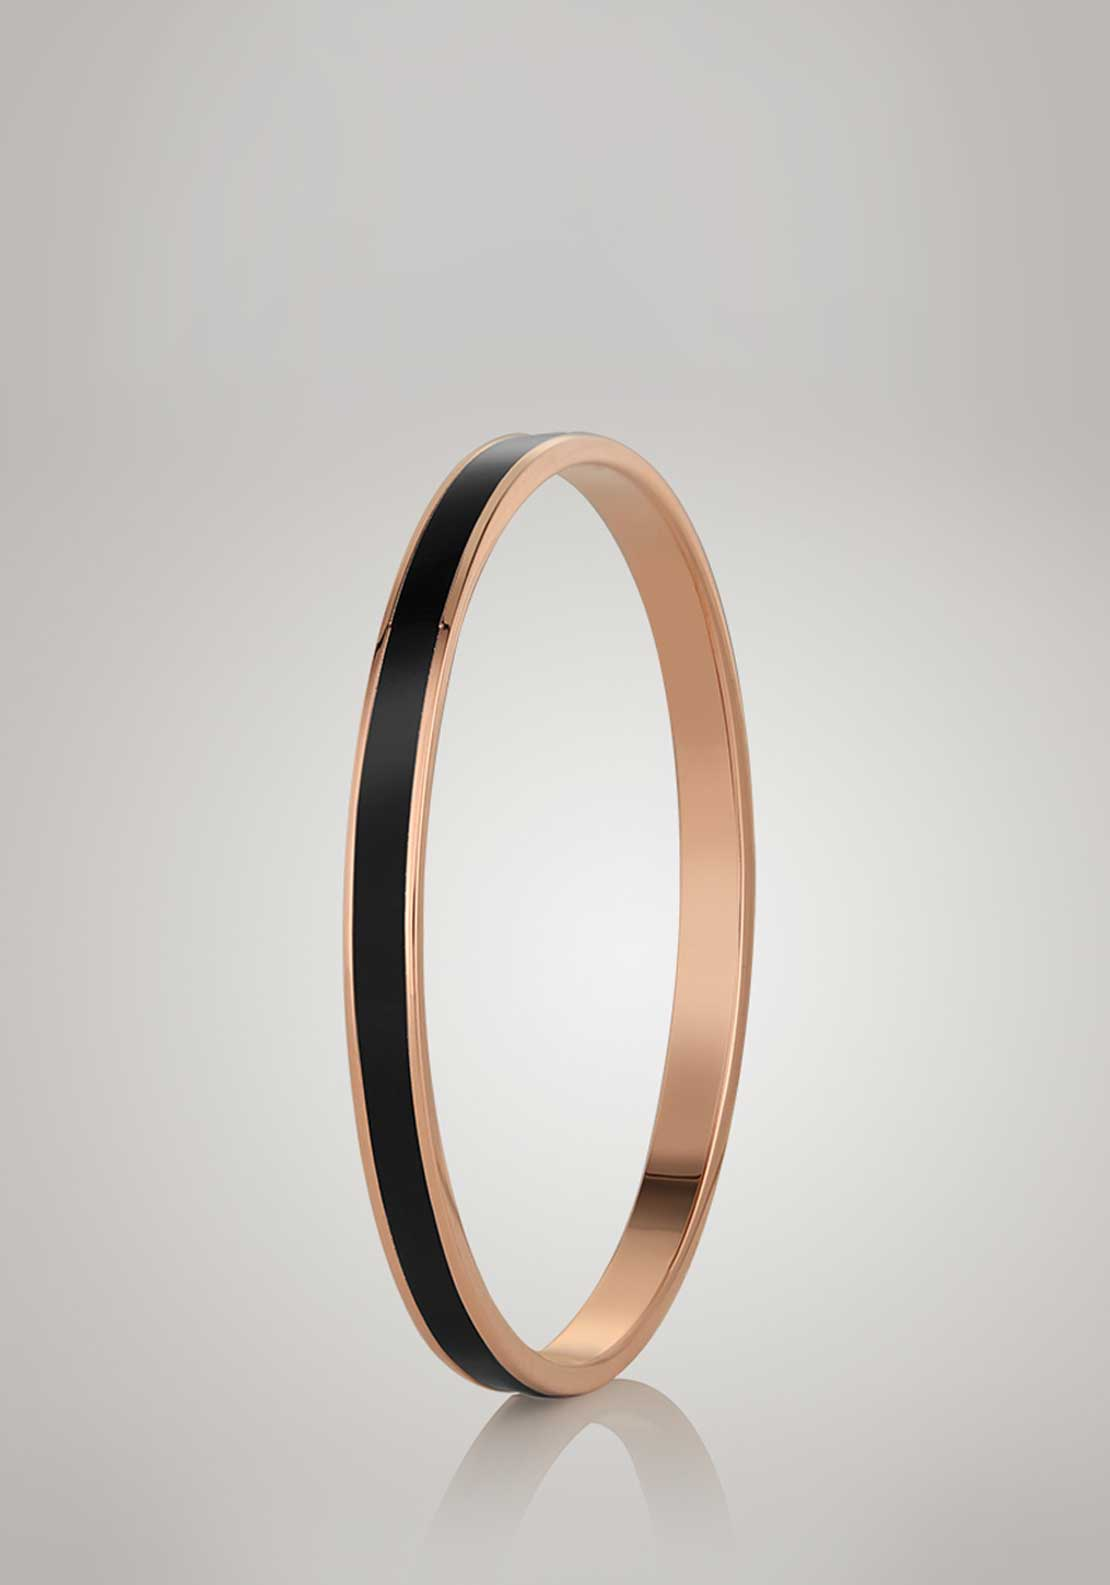 Newbridge Silverware Small Black Bangle, Rose Gold